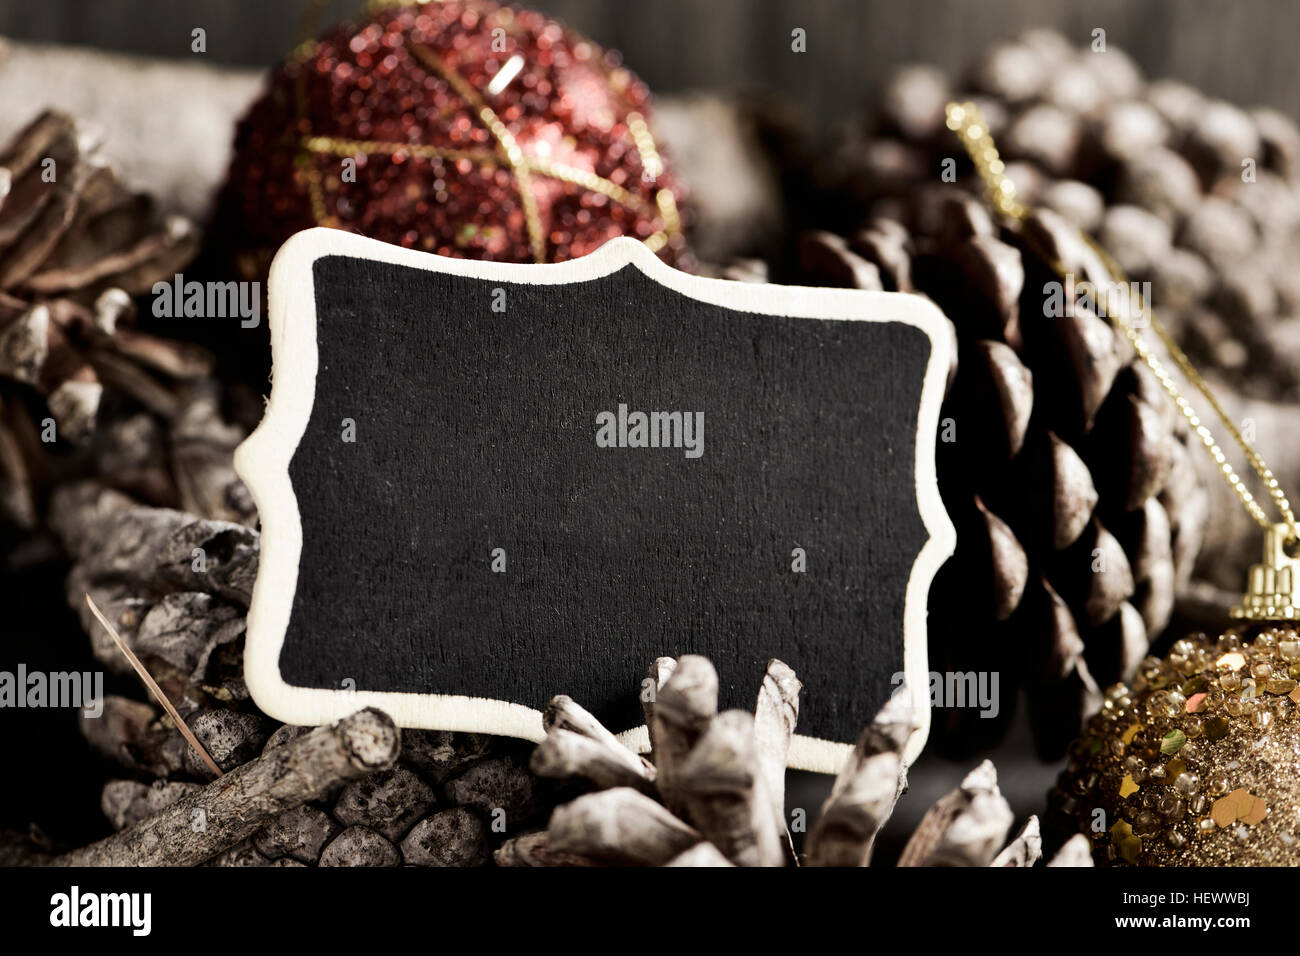 closeup of a black signboard with a blank space and some christmas balls on a pile of pine cones - Stock Image